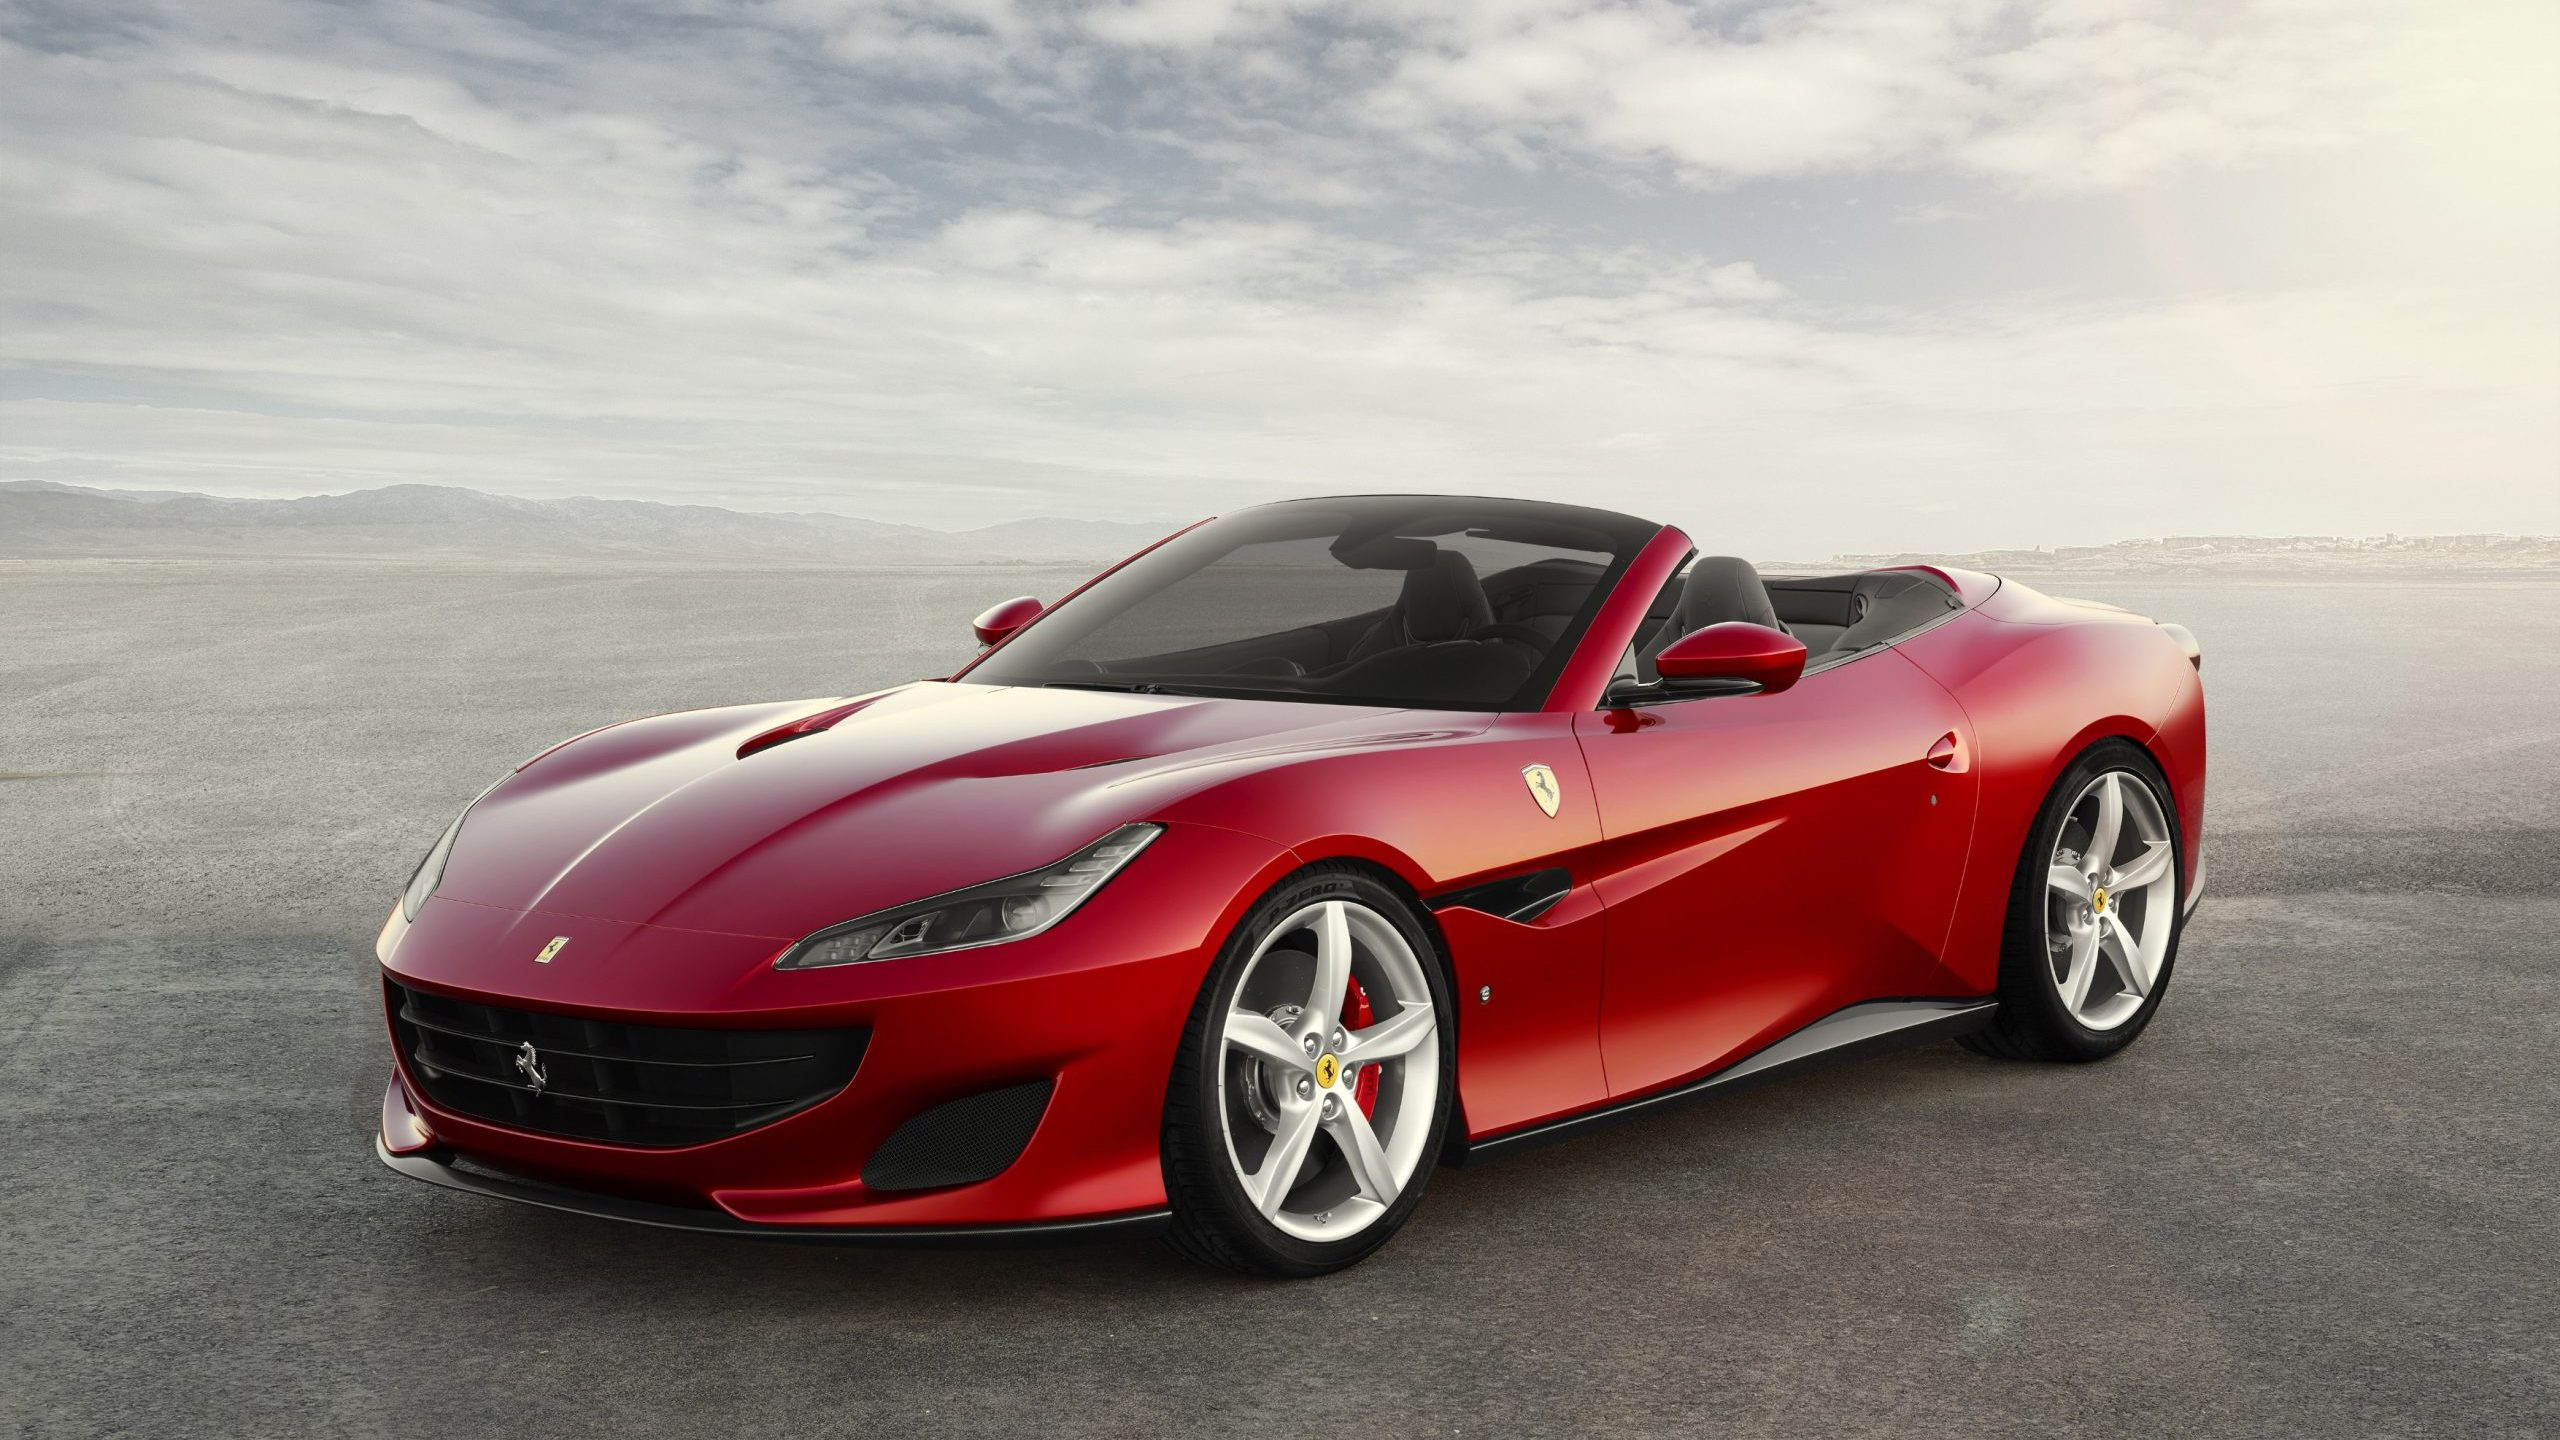 2018 Ferrari Portofino front three-quarter